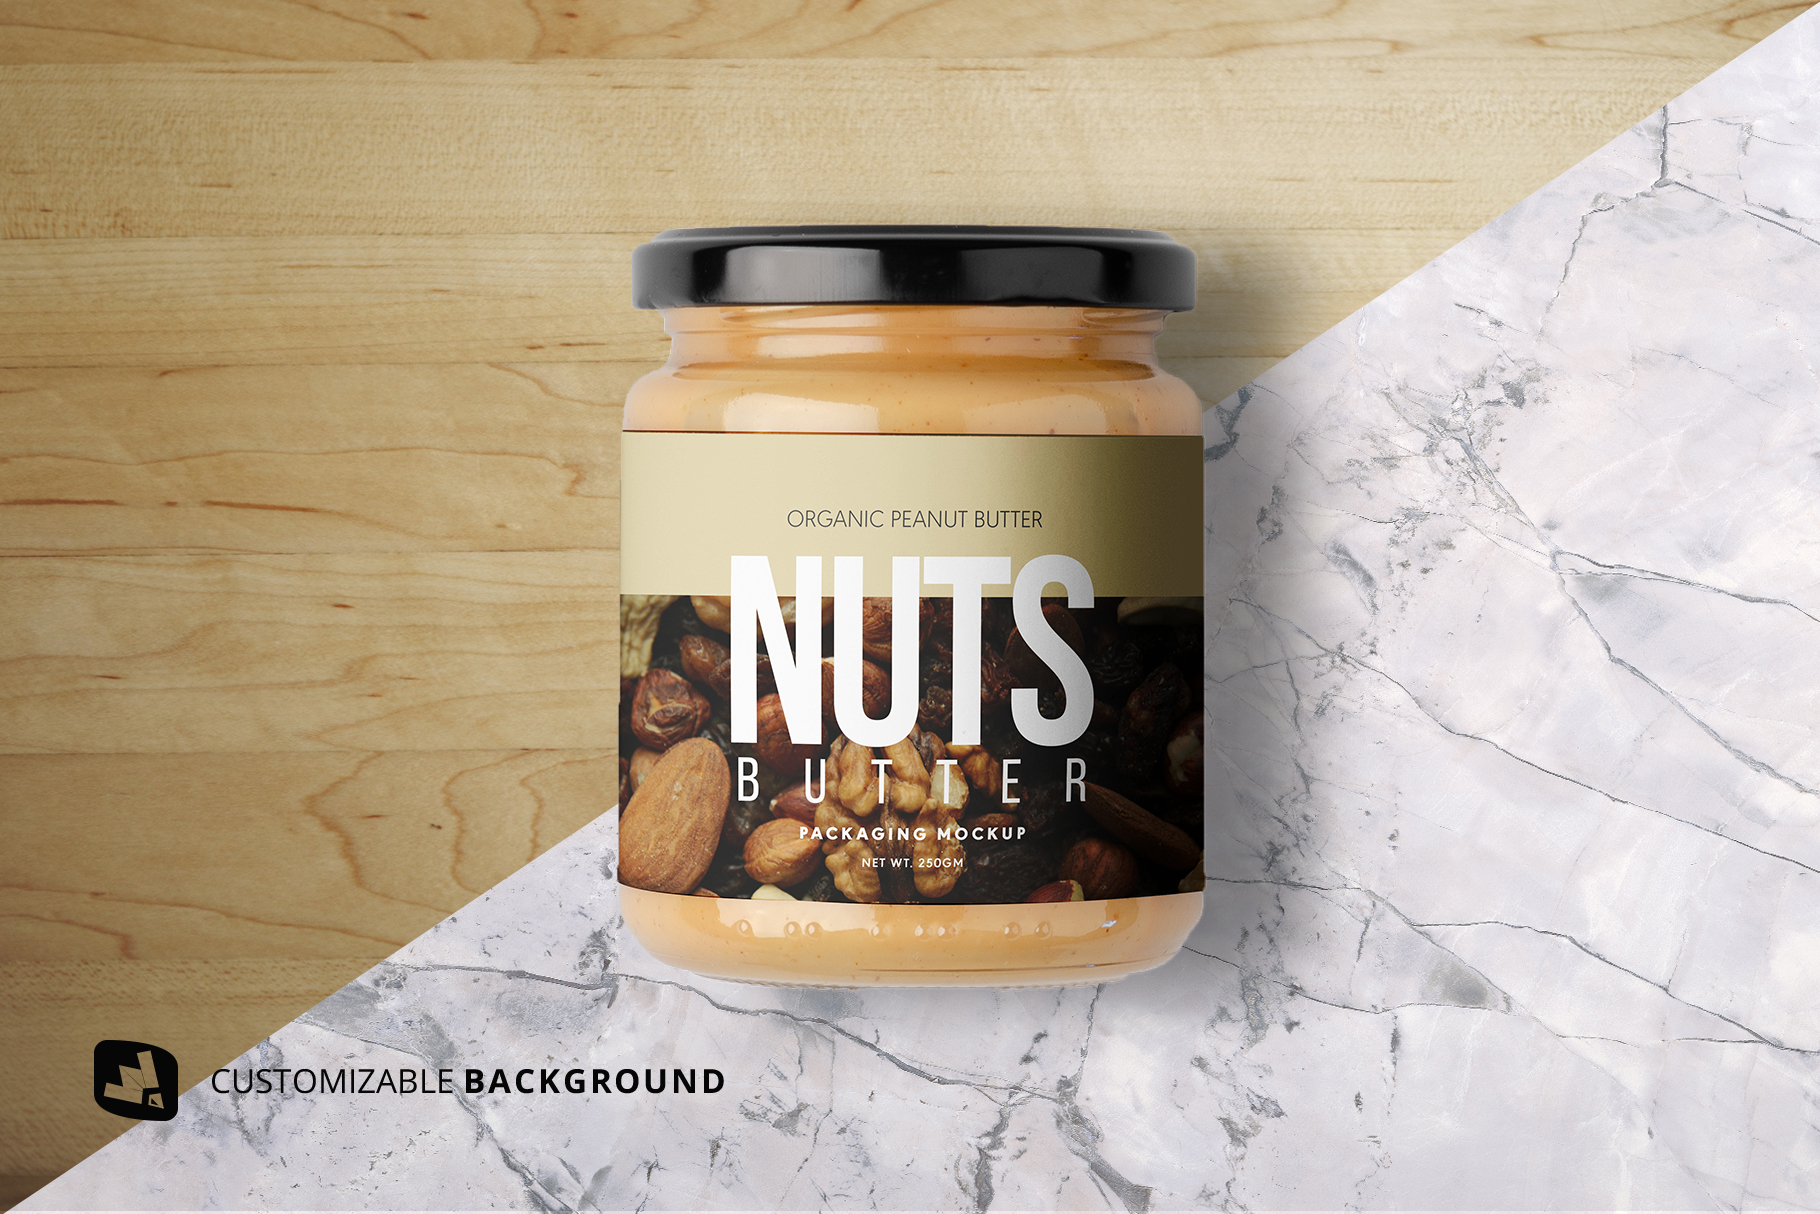 background options of the organic nut butter packaging mockup